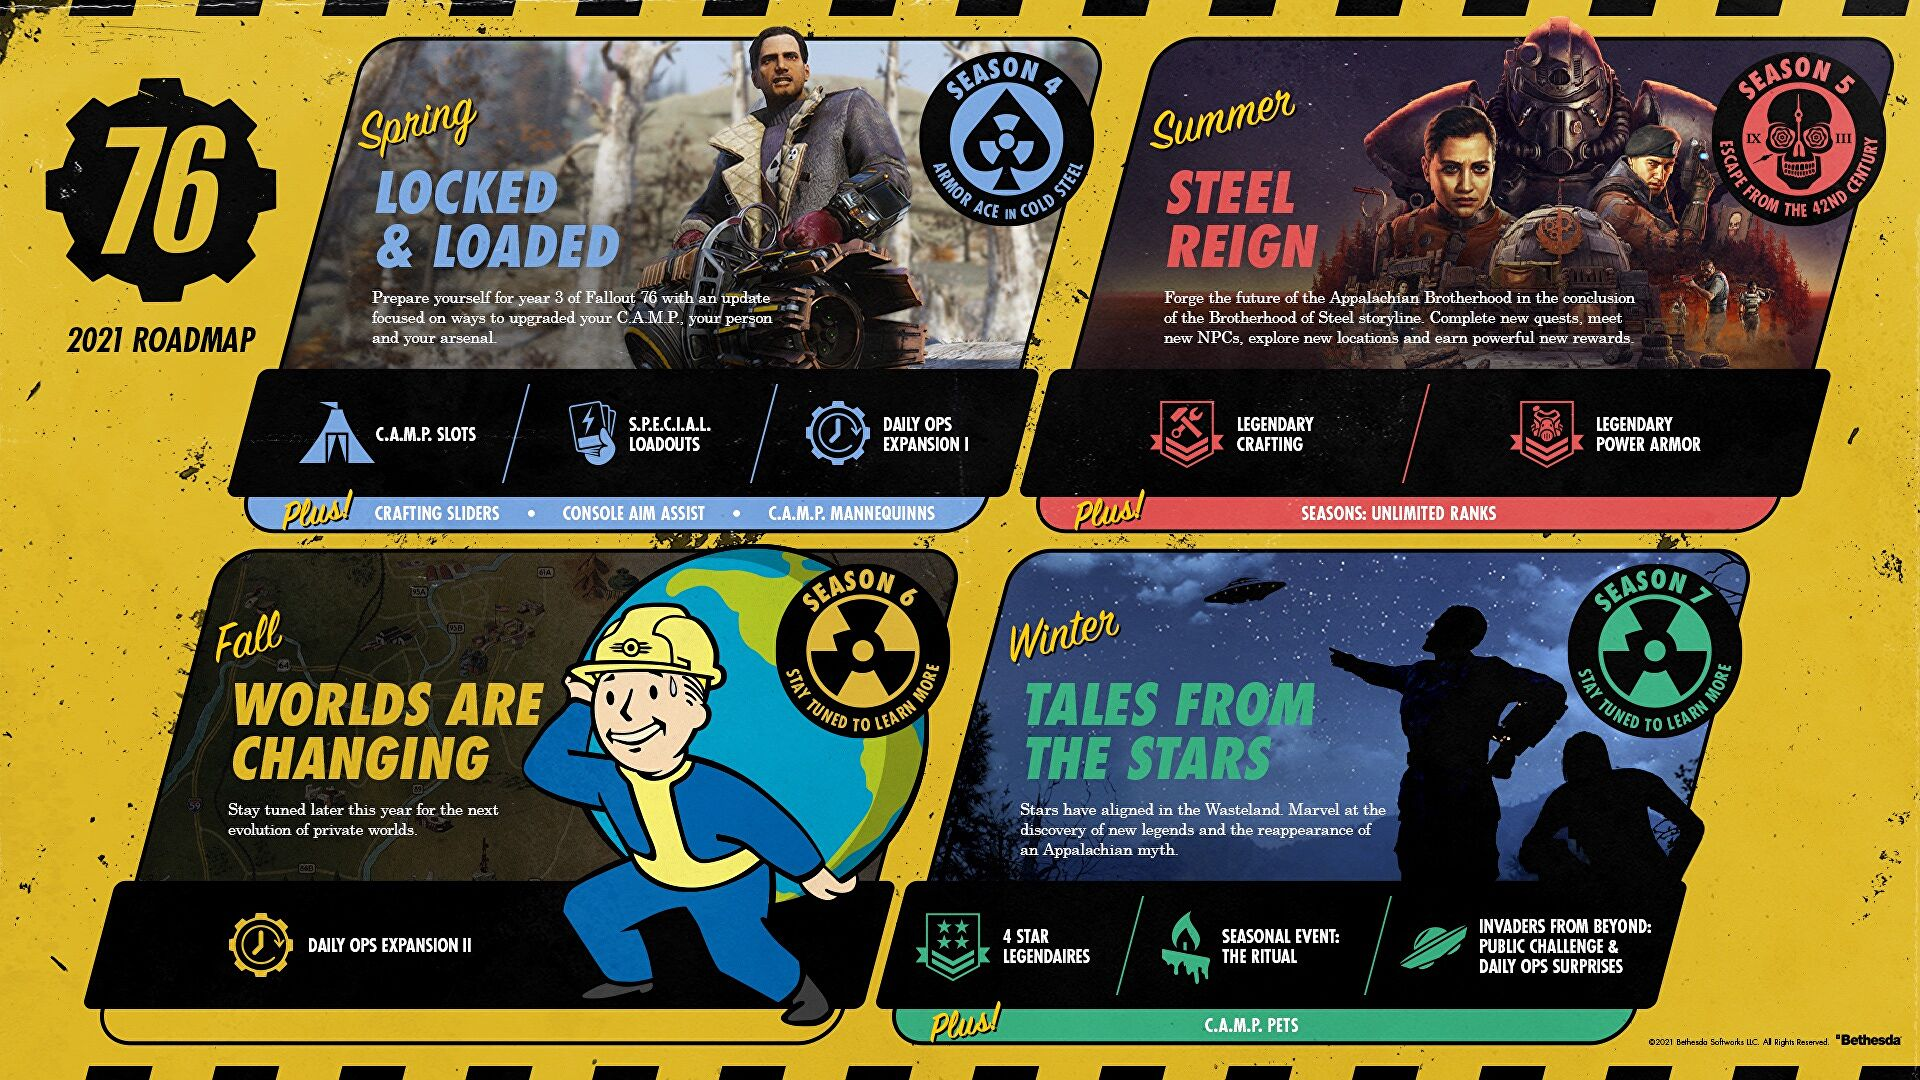 Fallout 76 details 2021 roadmap and perk loadouts are coming soon